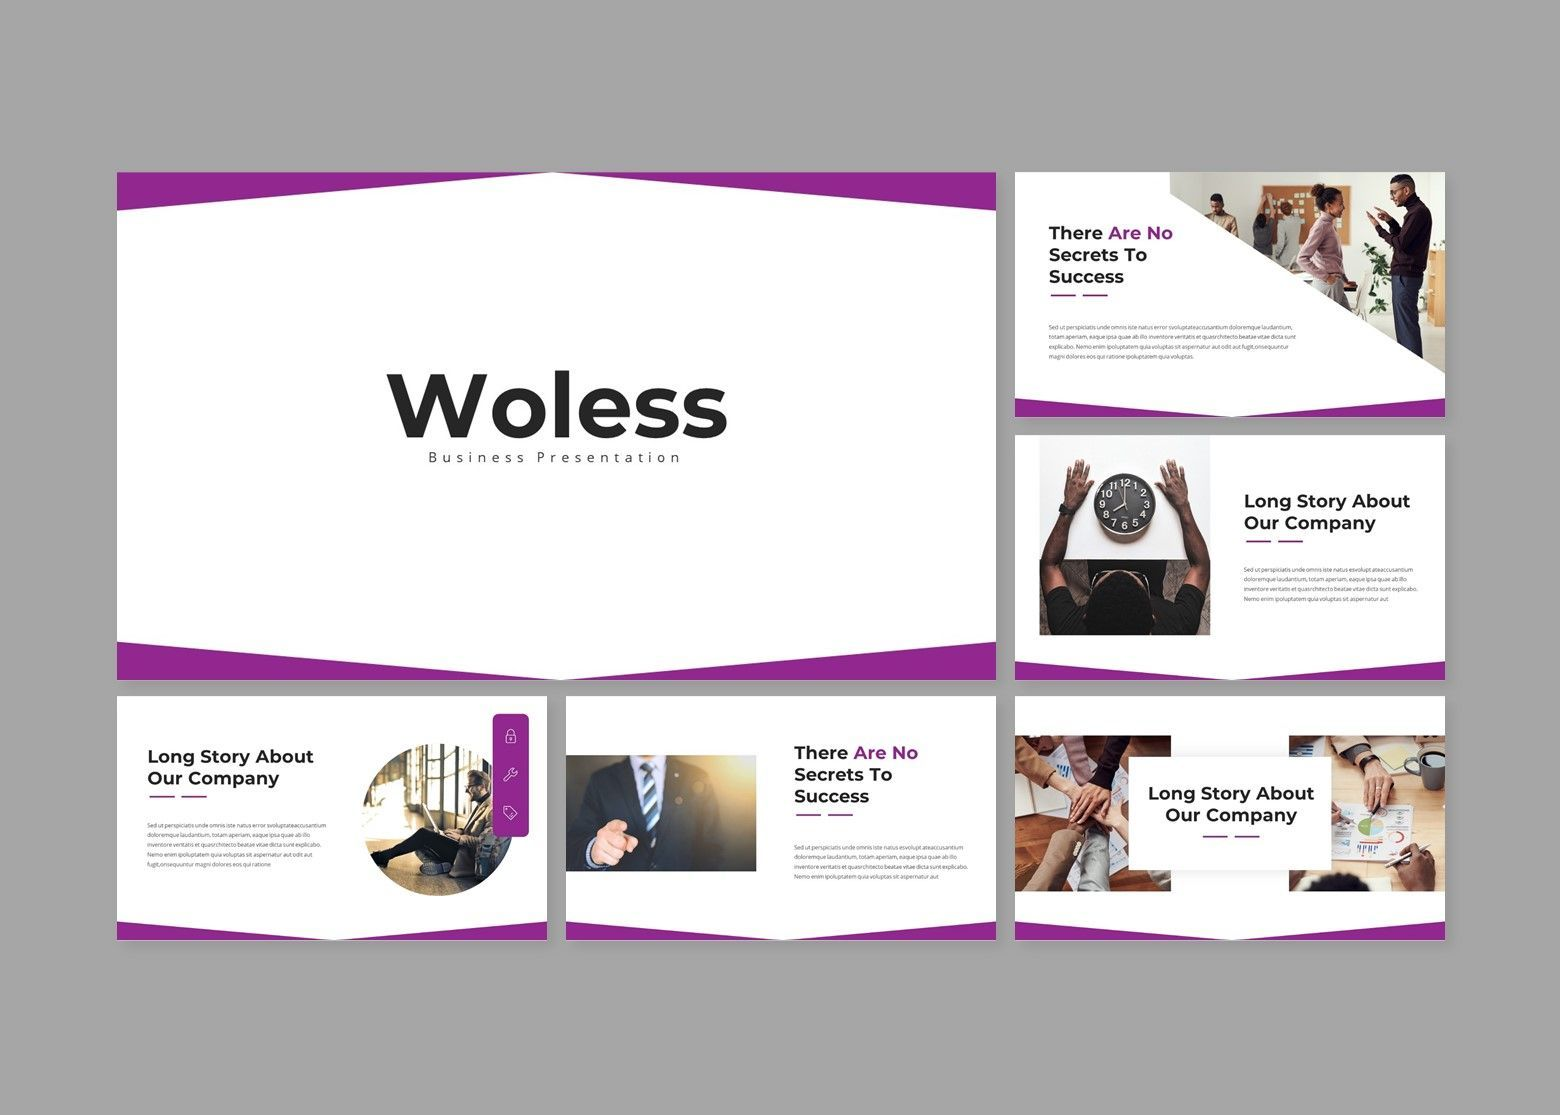 Woless Business Google Slides Template, Slide 2, 08109, Business Models — PoweredTemplate.com